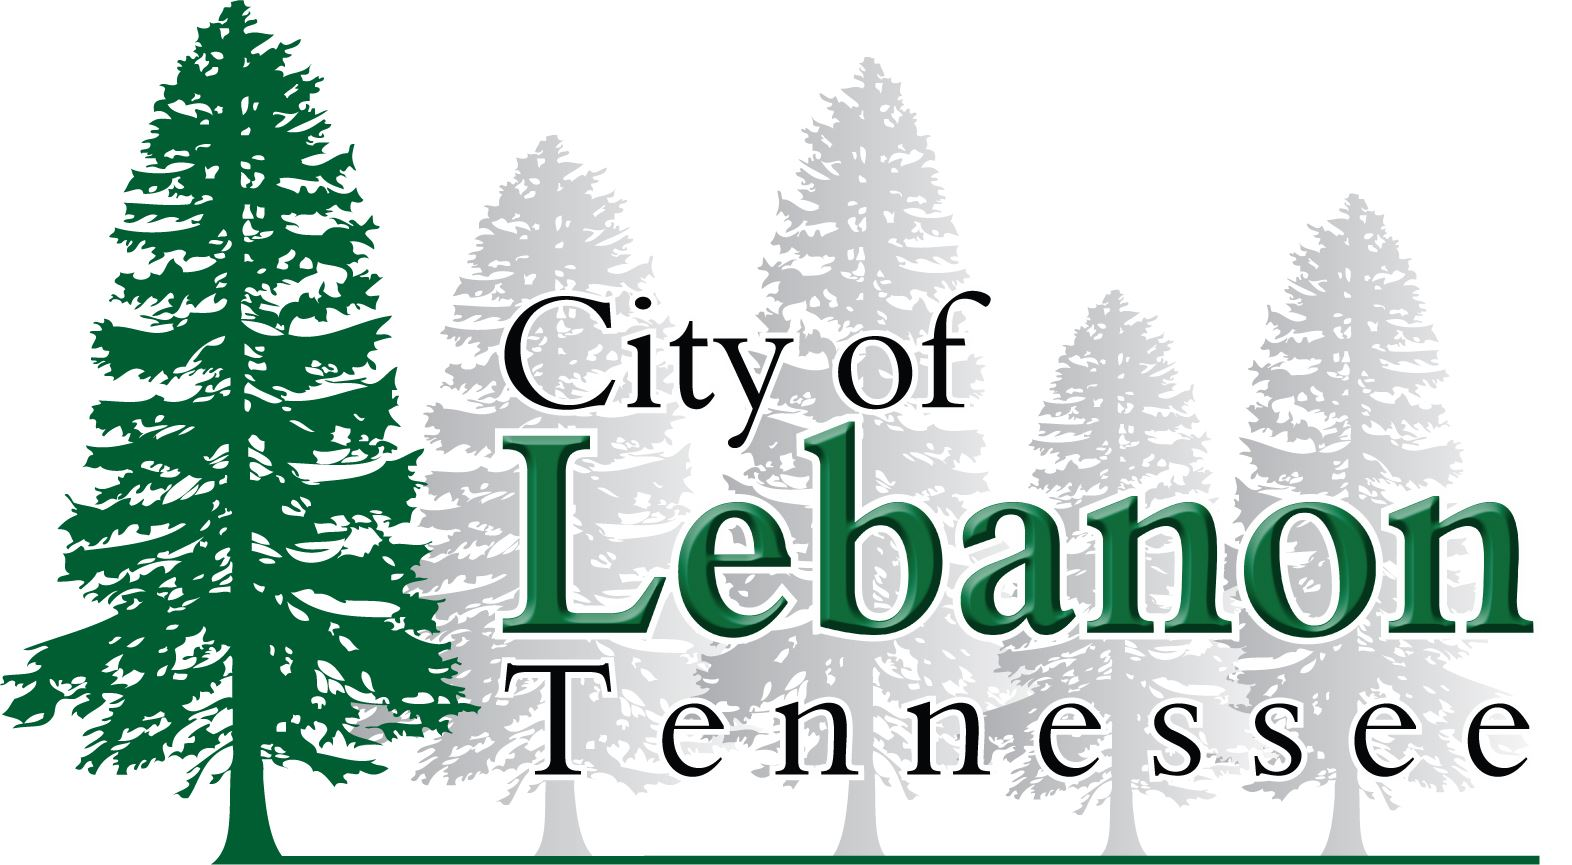 City of Lebanon logo - New Version 2014 jpg